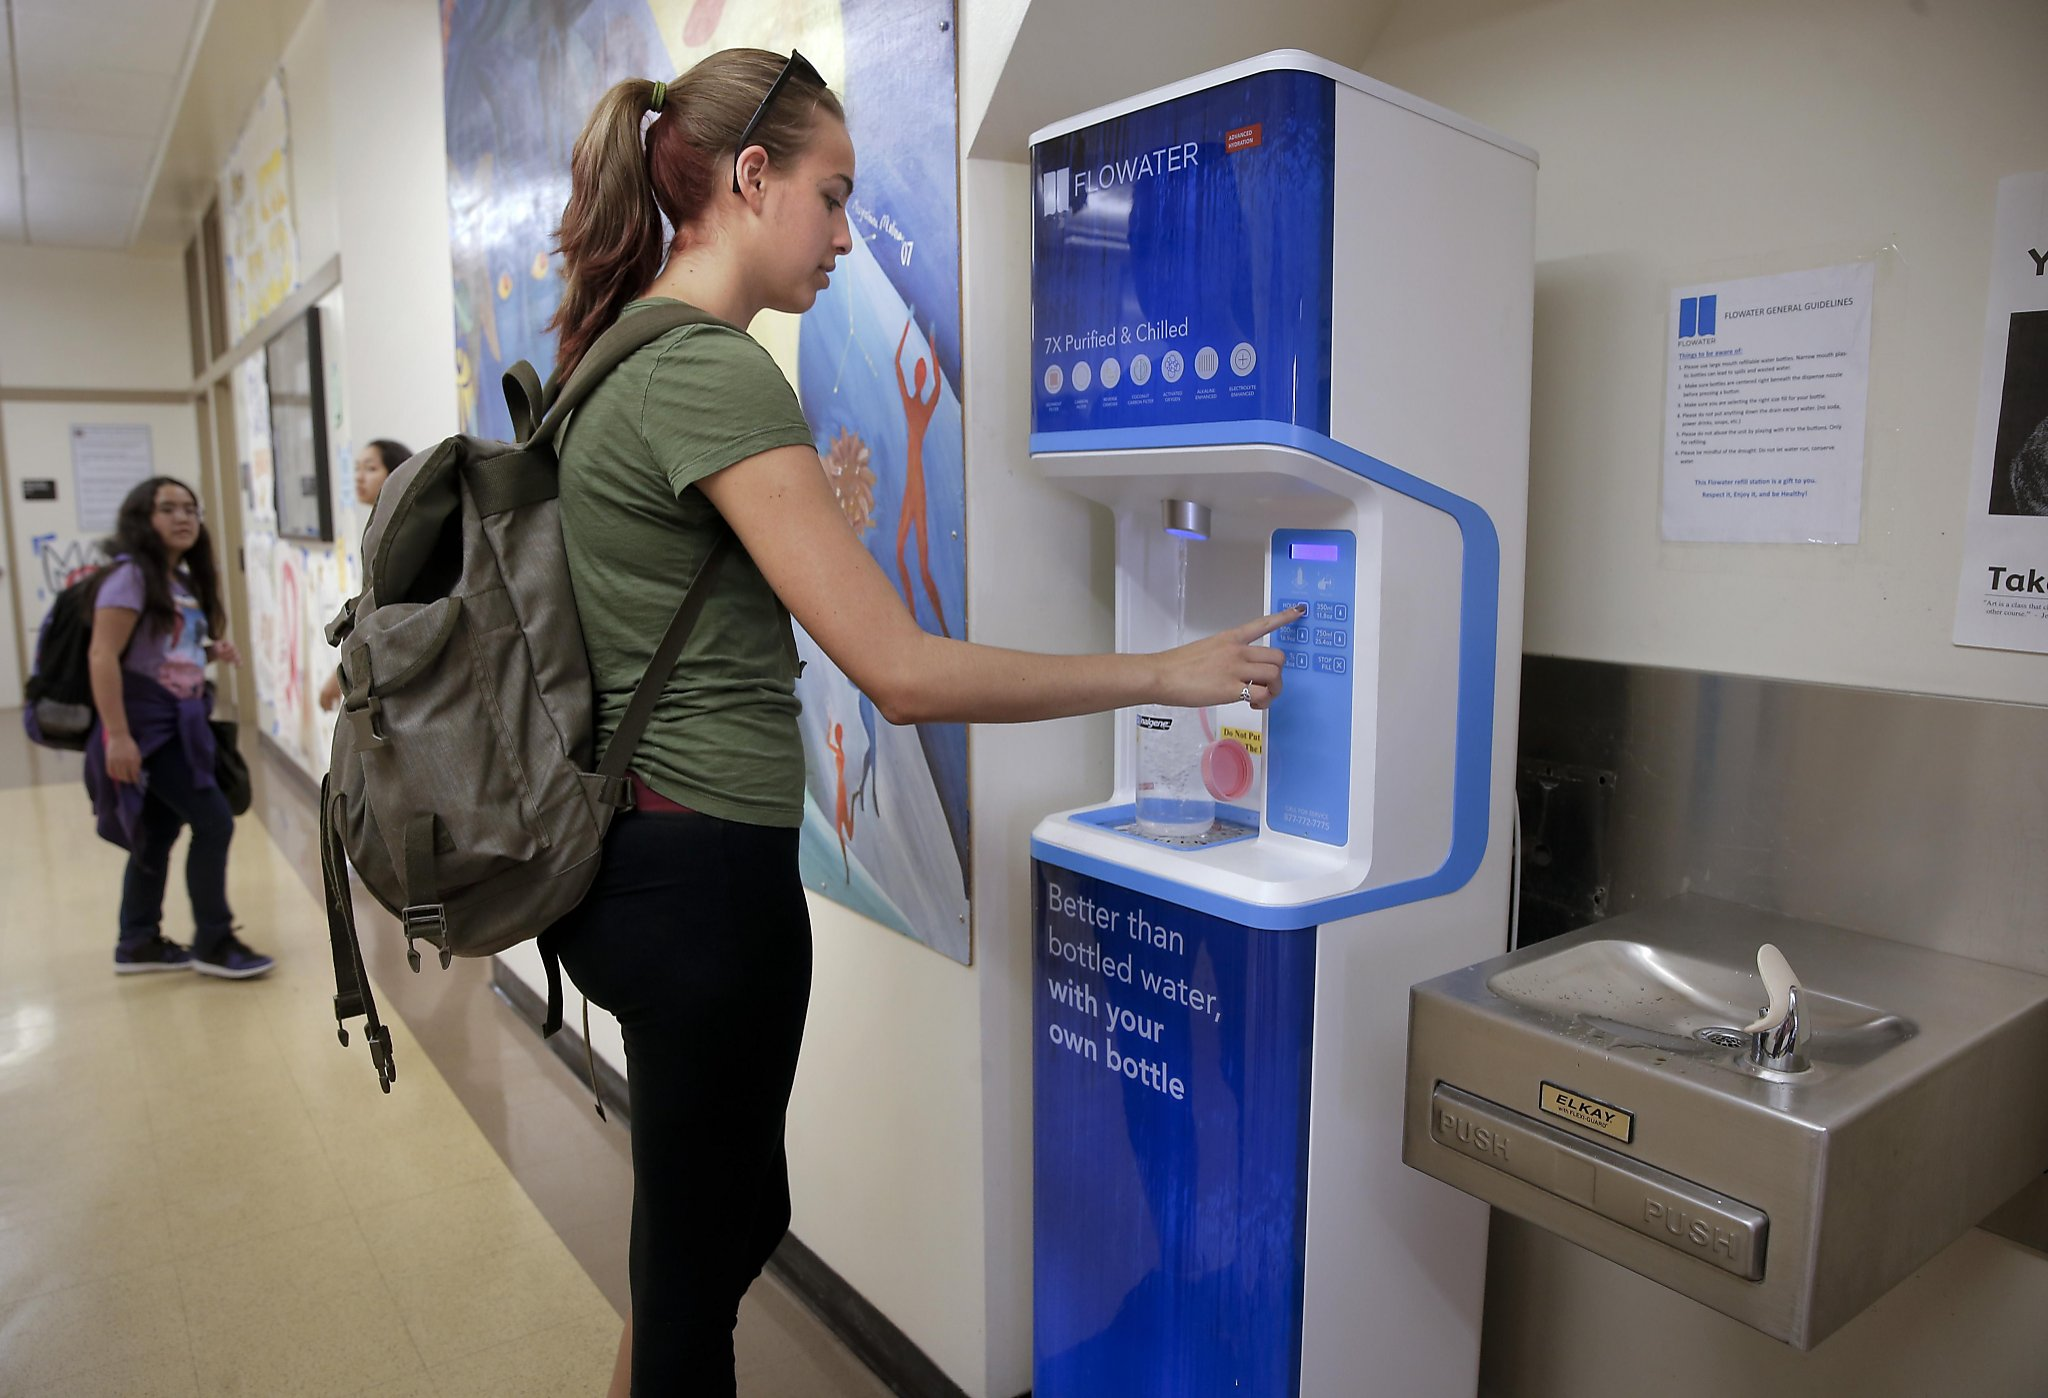 Water fountains schools - Schools Buying Water Filters Even Though Fountains Are Fine San Francisco Chronicle